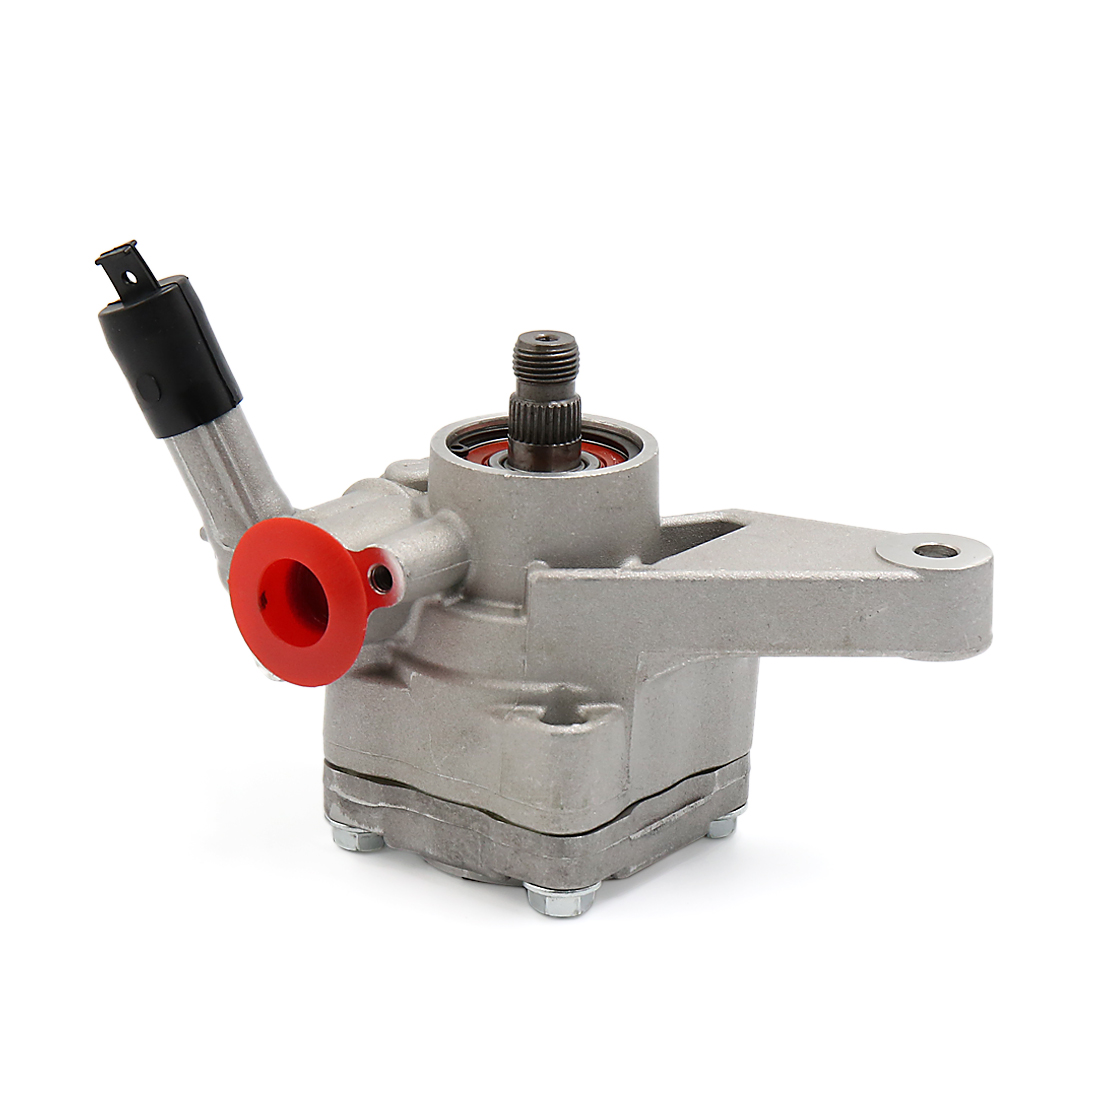 New Power Steering Pump 11883621 21-5290 For 2001-2003